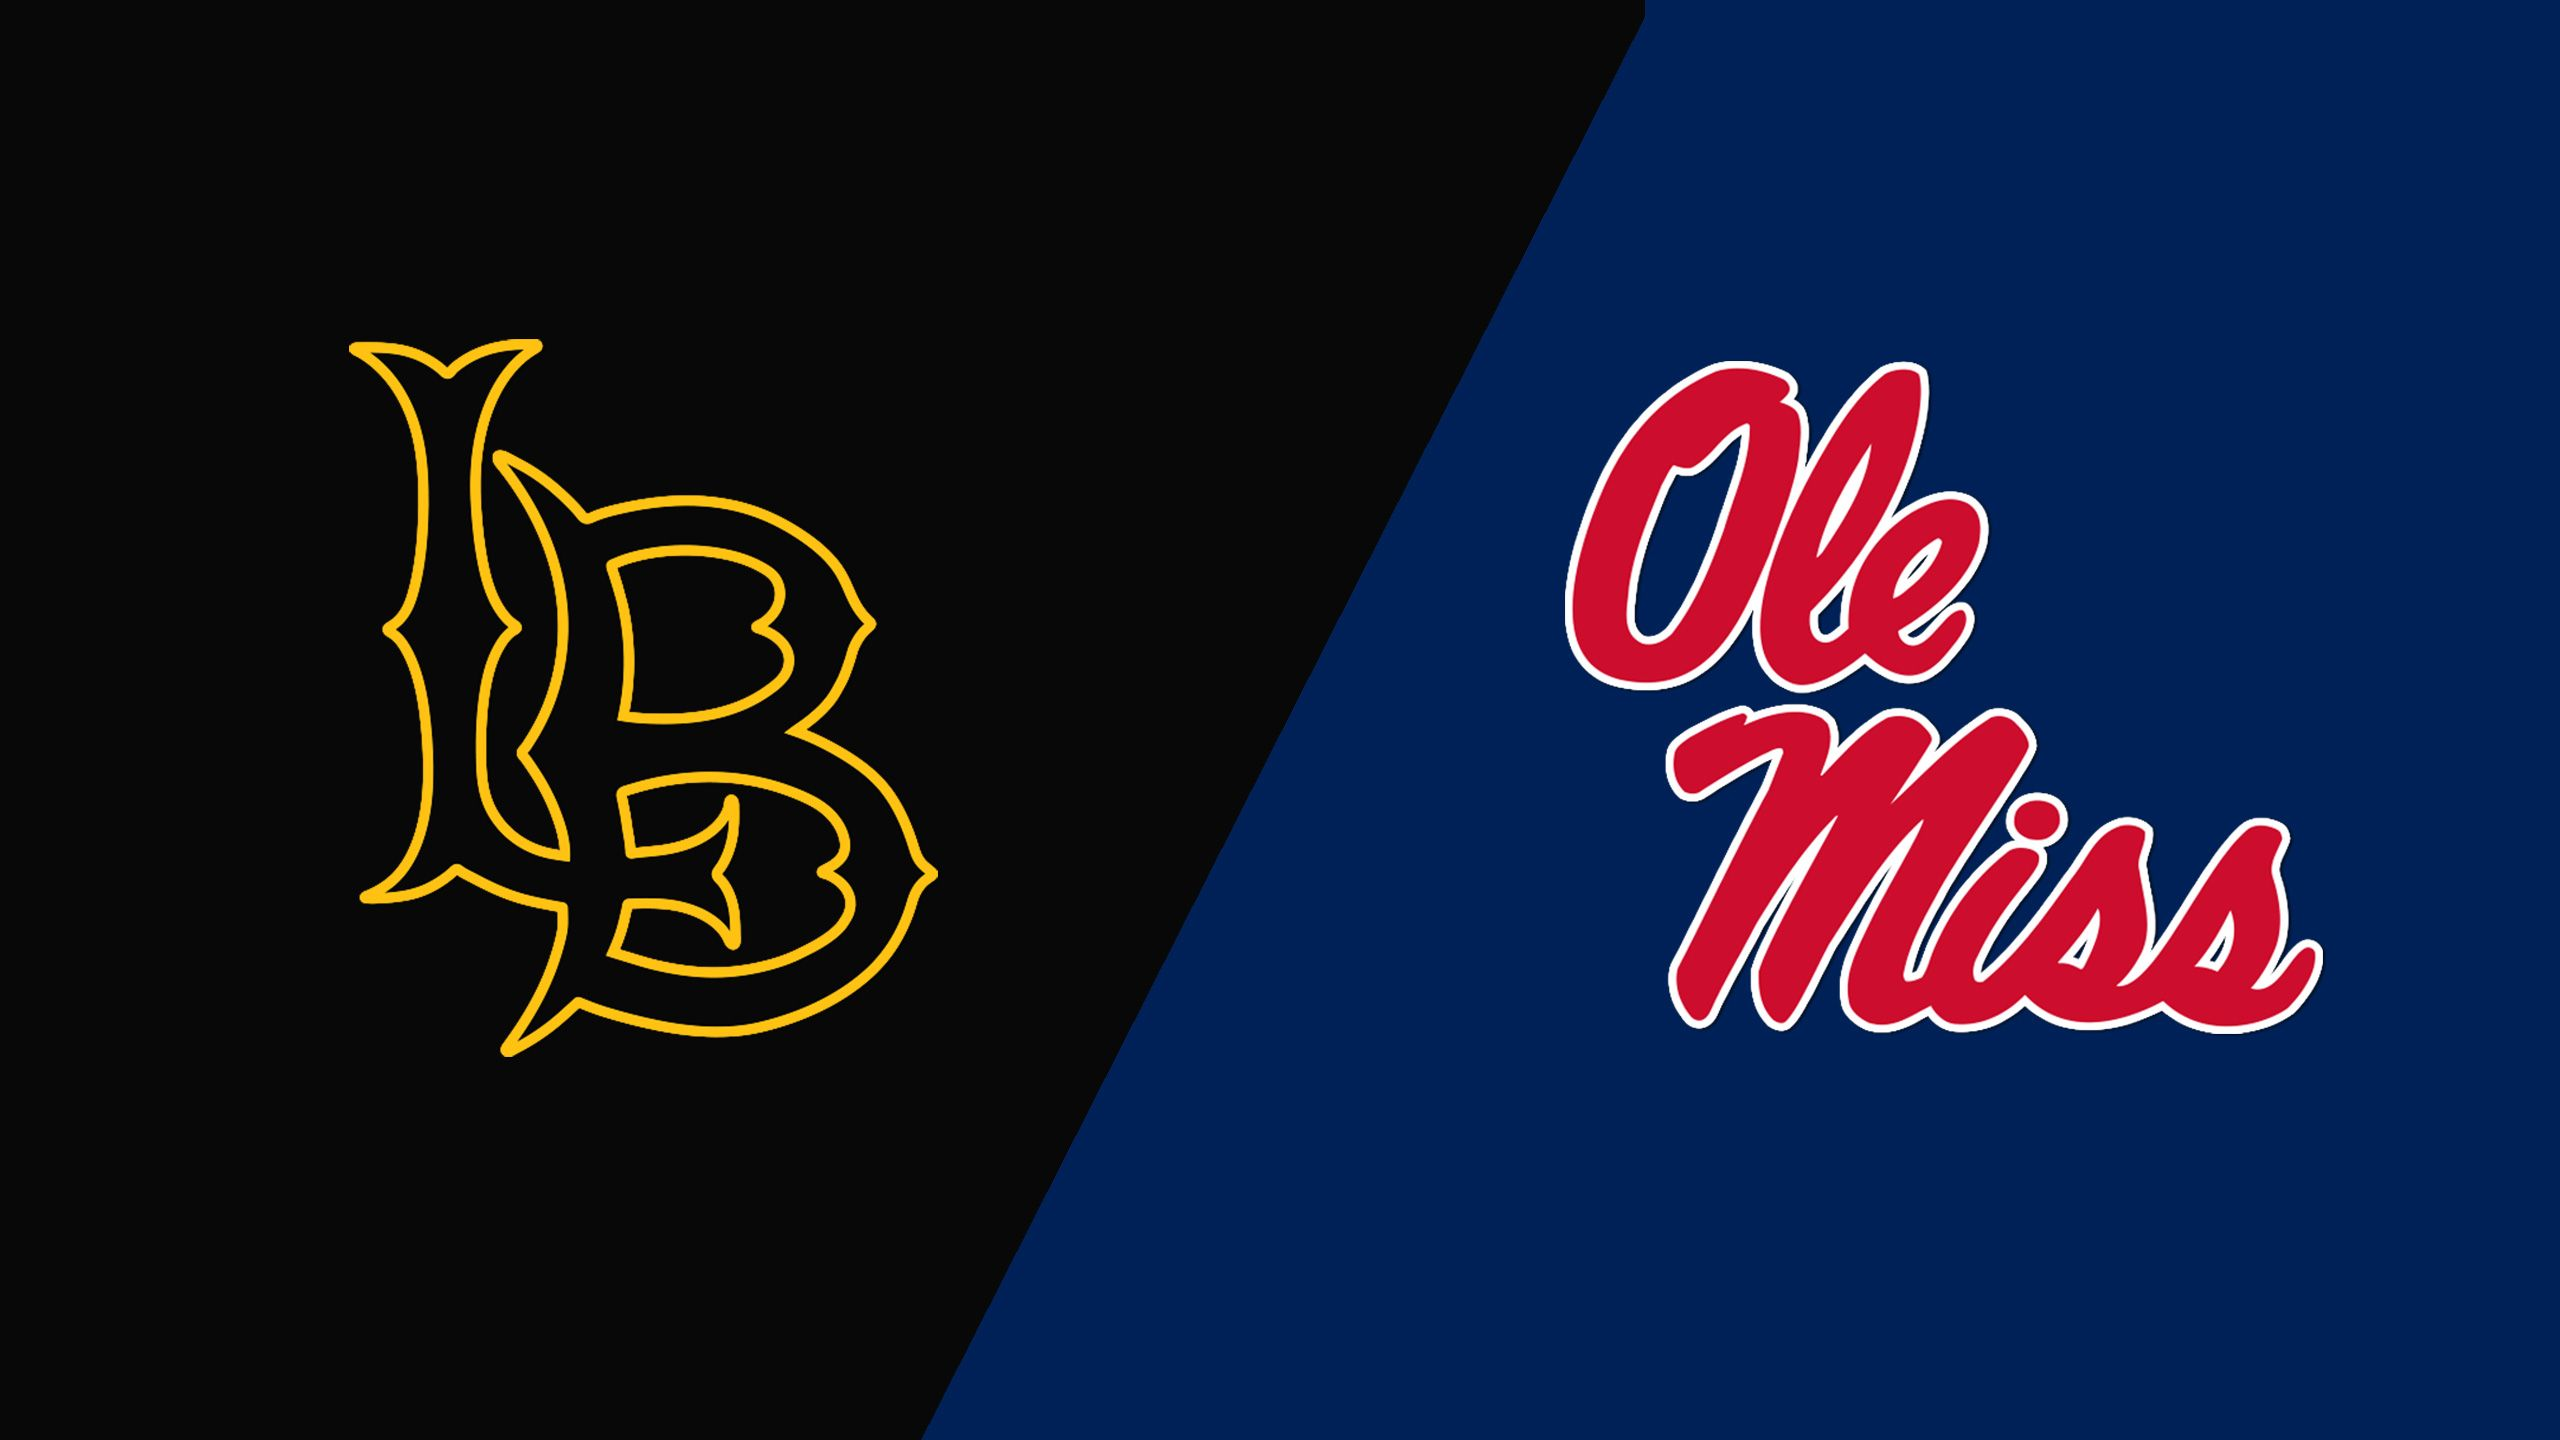 Long Beach State vs. Ole Miss (Site 3 / Game 5)